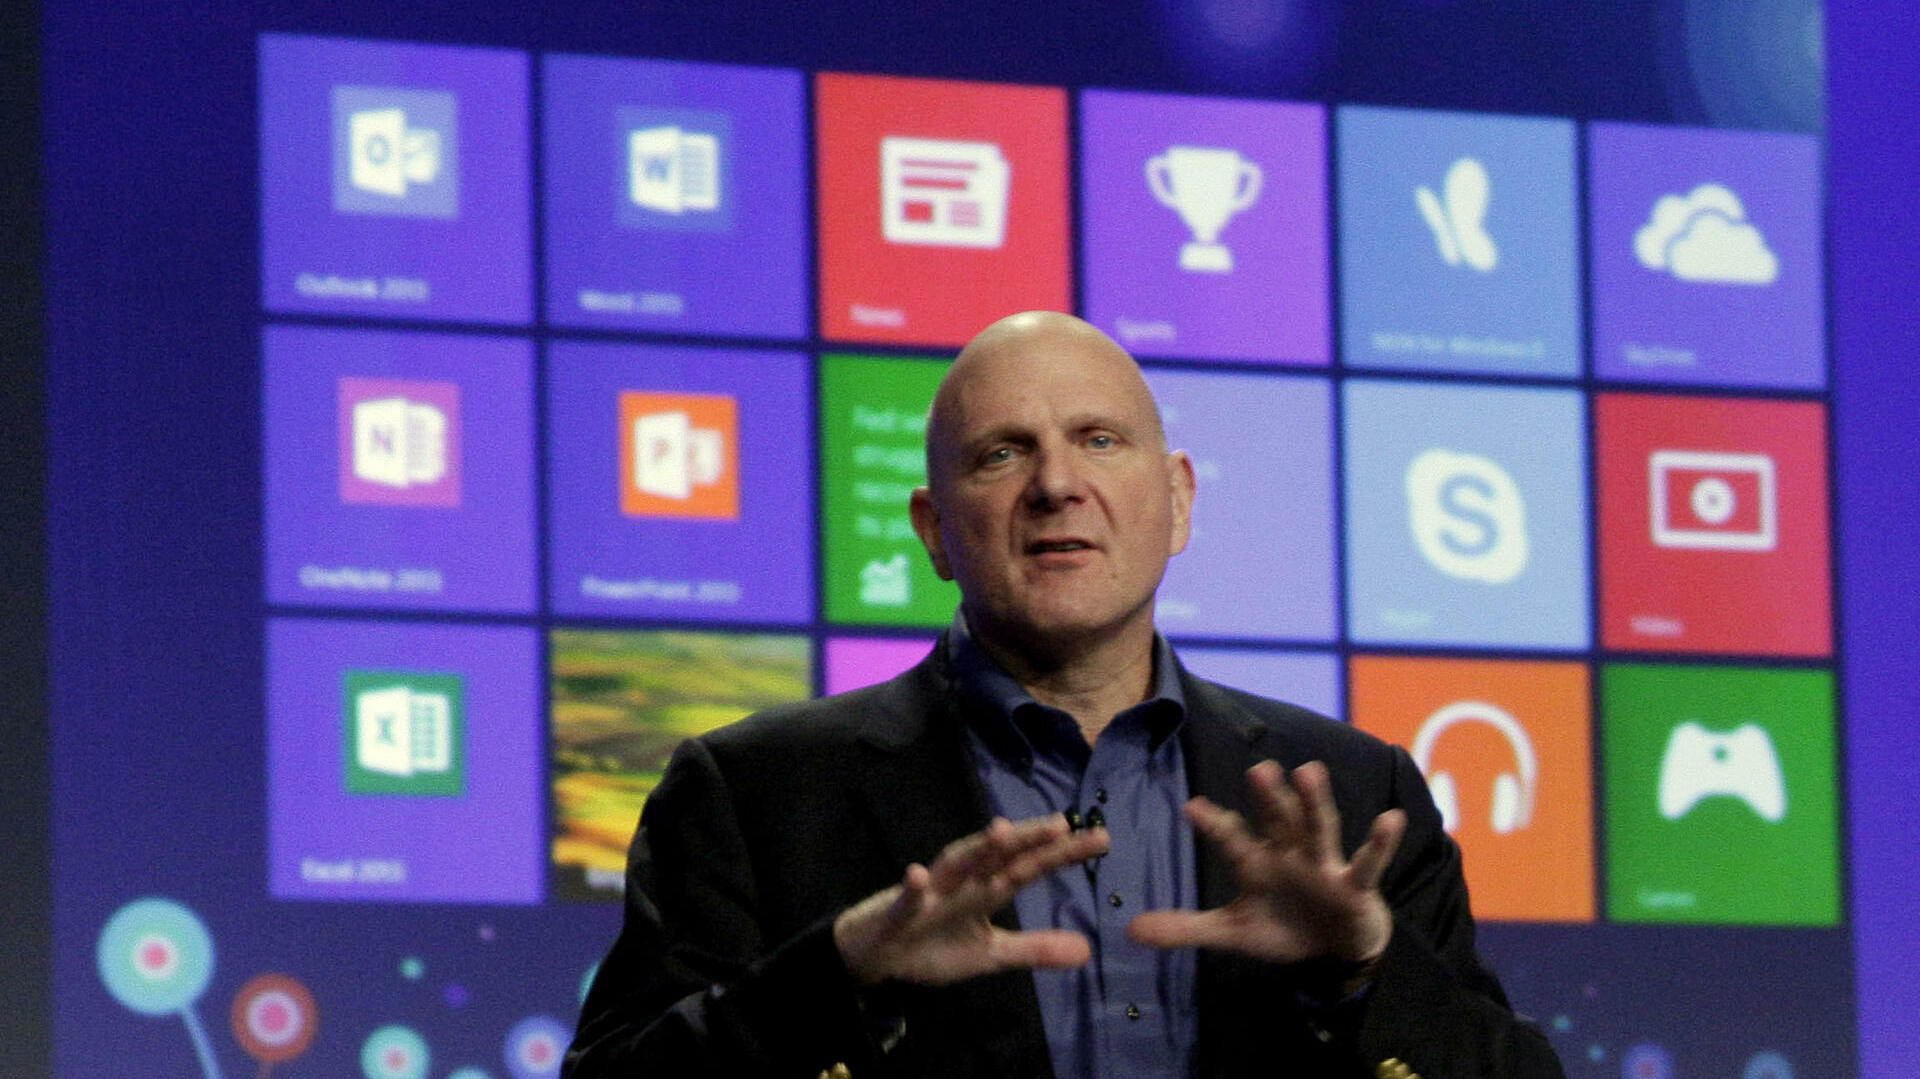 Microsoft: Windows 8 legt guten Start hin